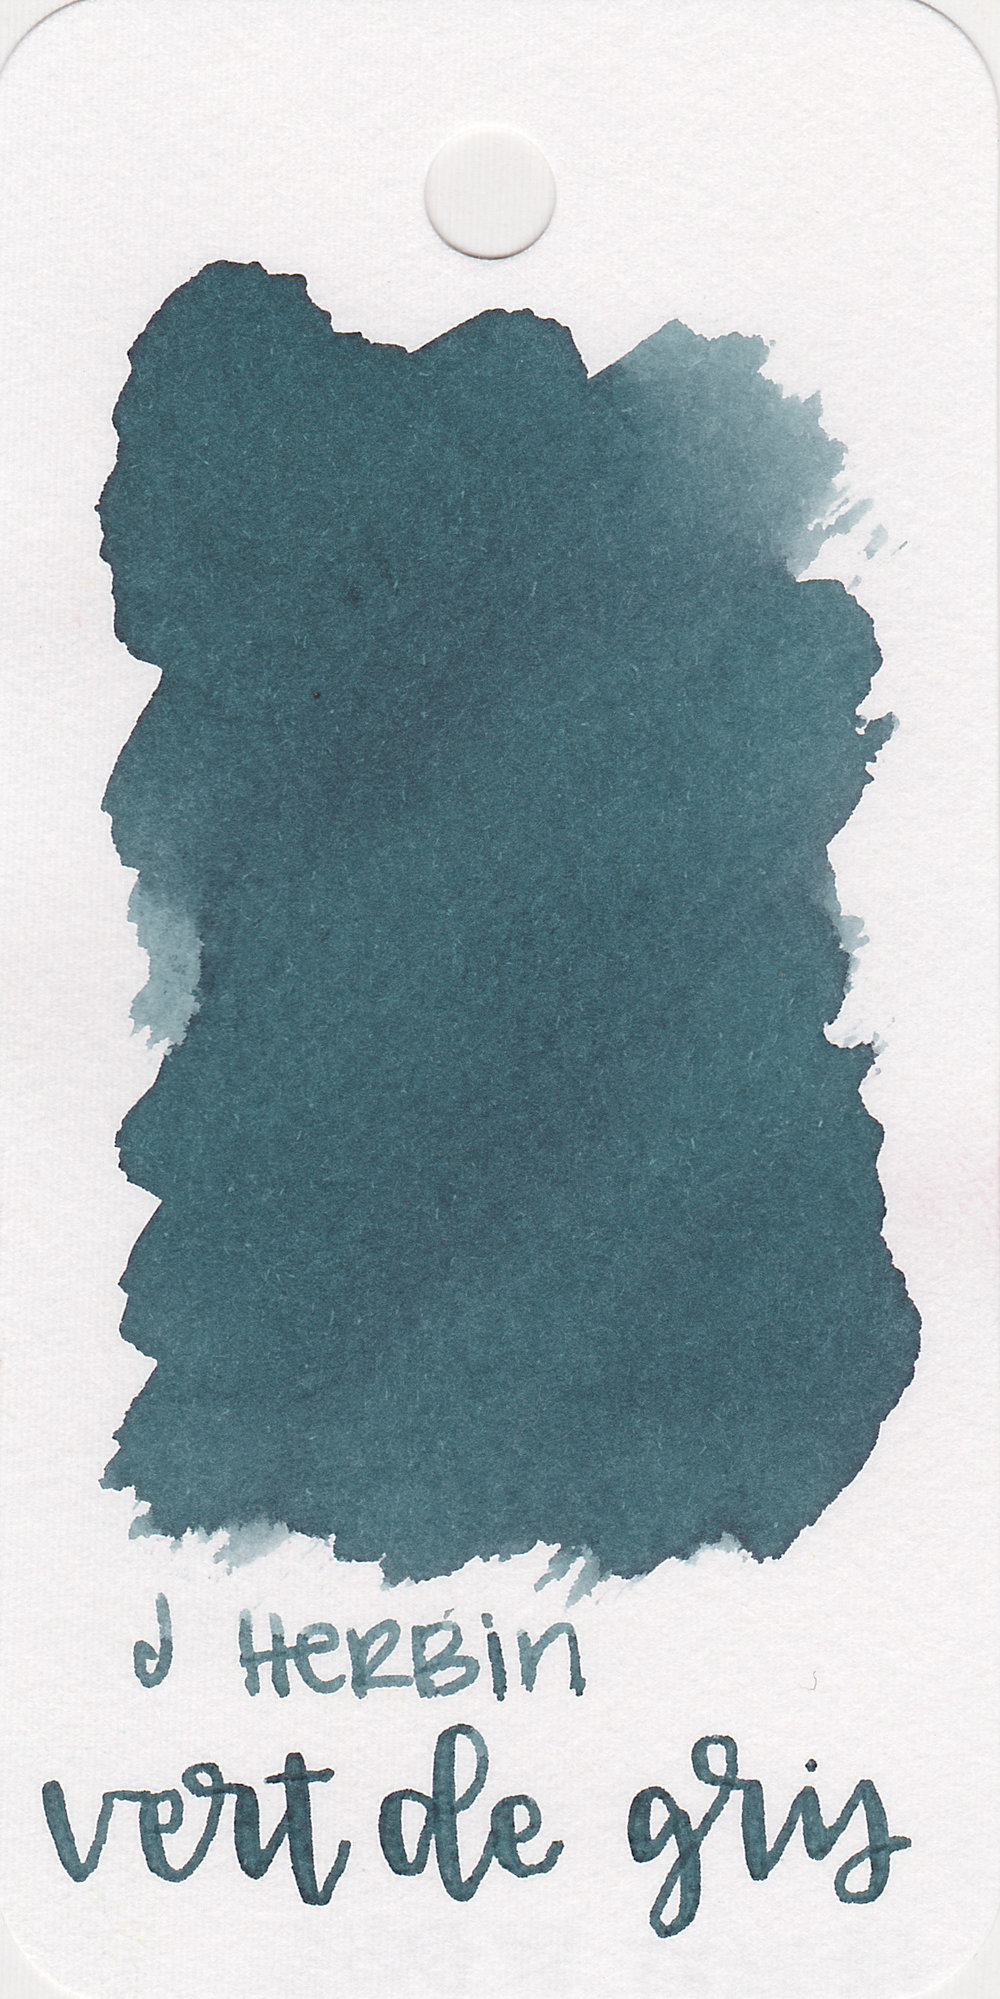 The color: - Vert de Gris is one of those colors that could fit in a few categories. In large swabs it looks more green/grey and in writing it looks more blue, so I'm going to call it a blue.